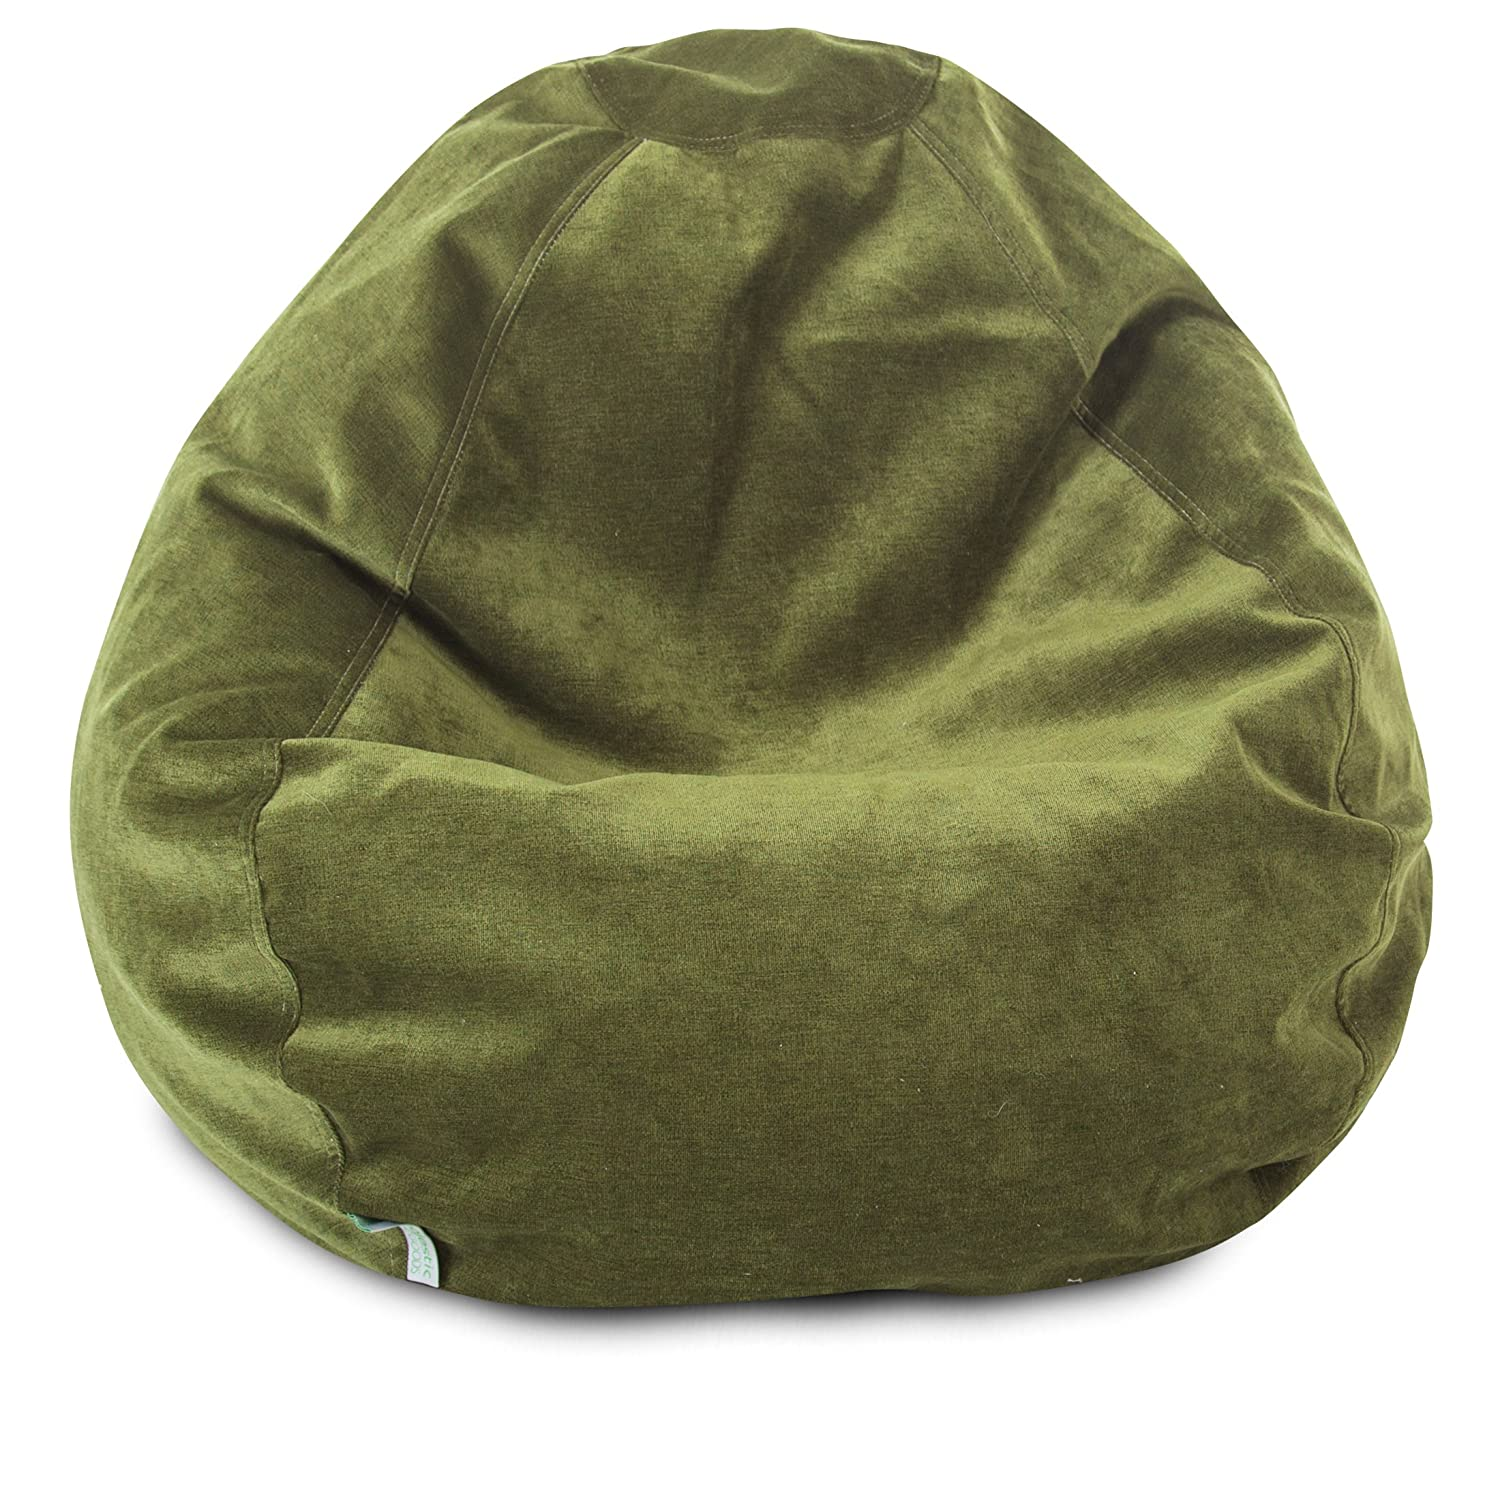 Majestic Home Goods Classic Bean Bag Chair - Villa Giant Classic Bean Bags for Small Adults and Kids (28 x 28 x 22 Inches) (Apple Green) 85907264030